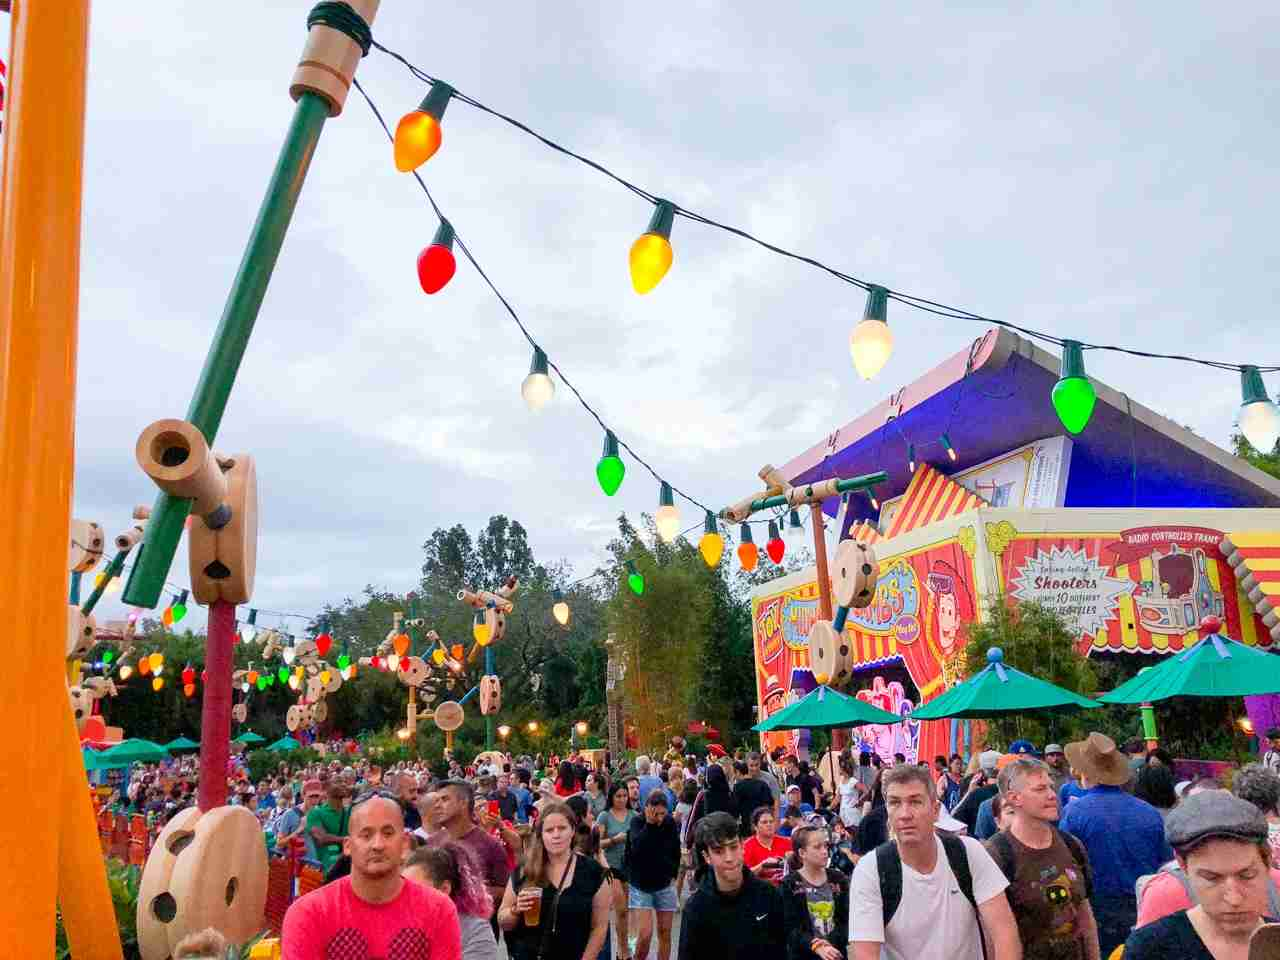 Enjoy Toy Story Land with your family on points